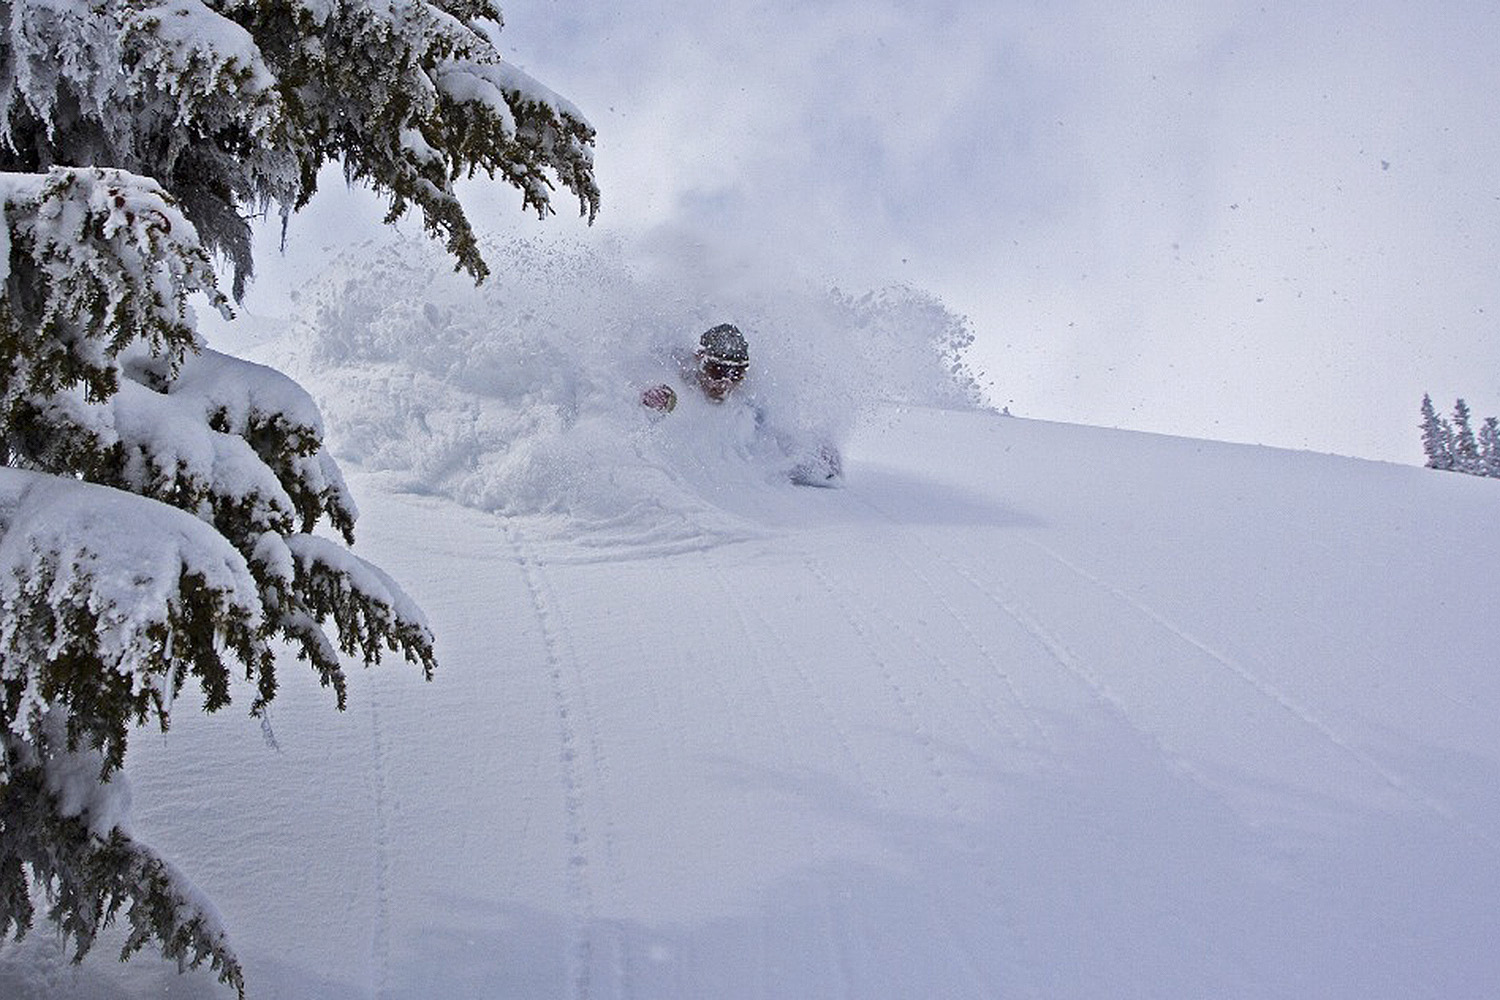 Plentiful and reliable snow conditions.